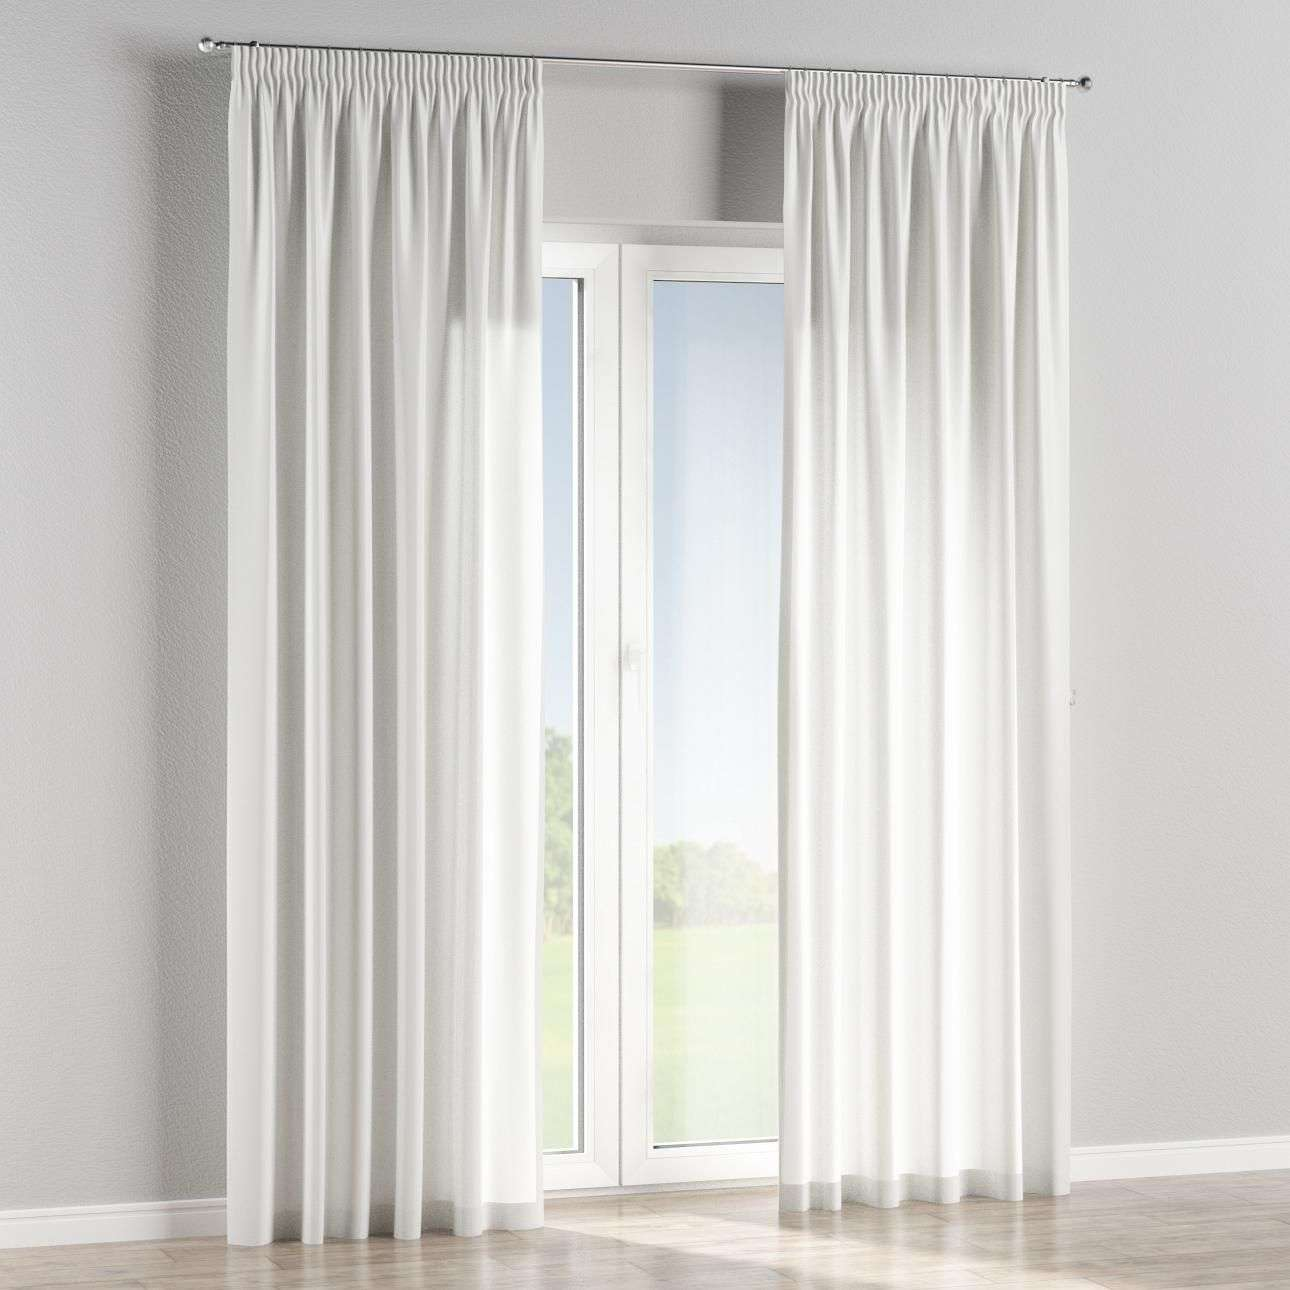 Pencil pleat curtains in collection Cotton Panama, fabric: 702-05